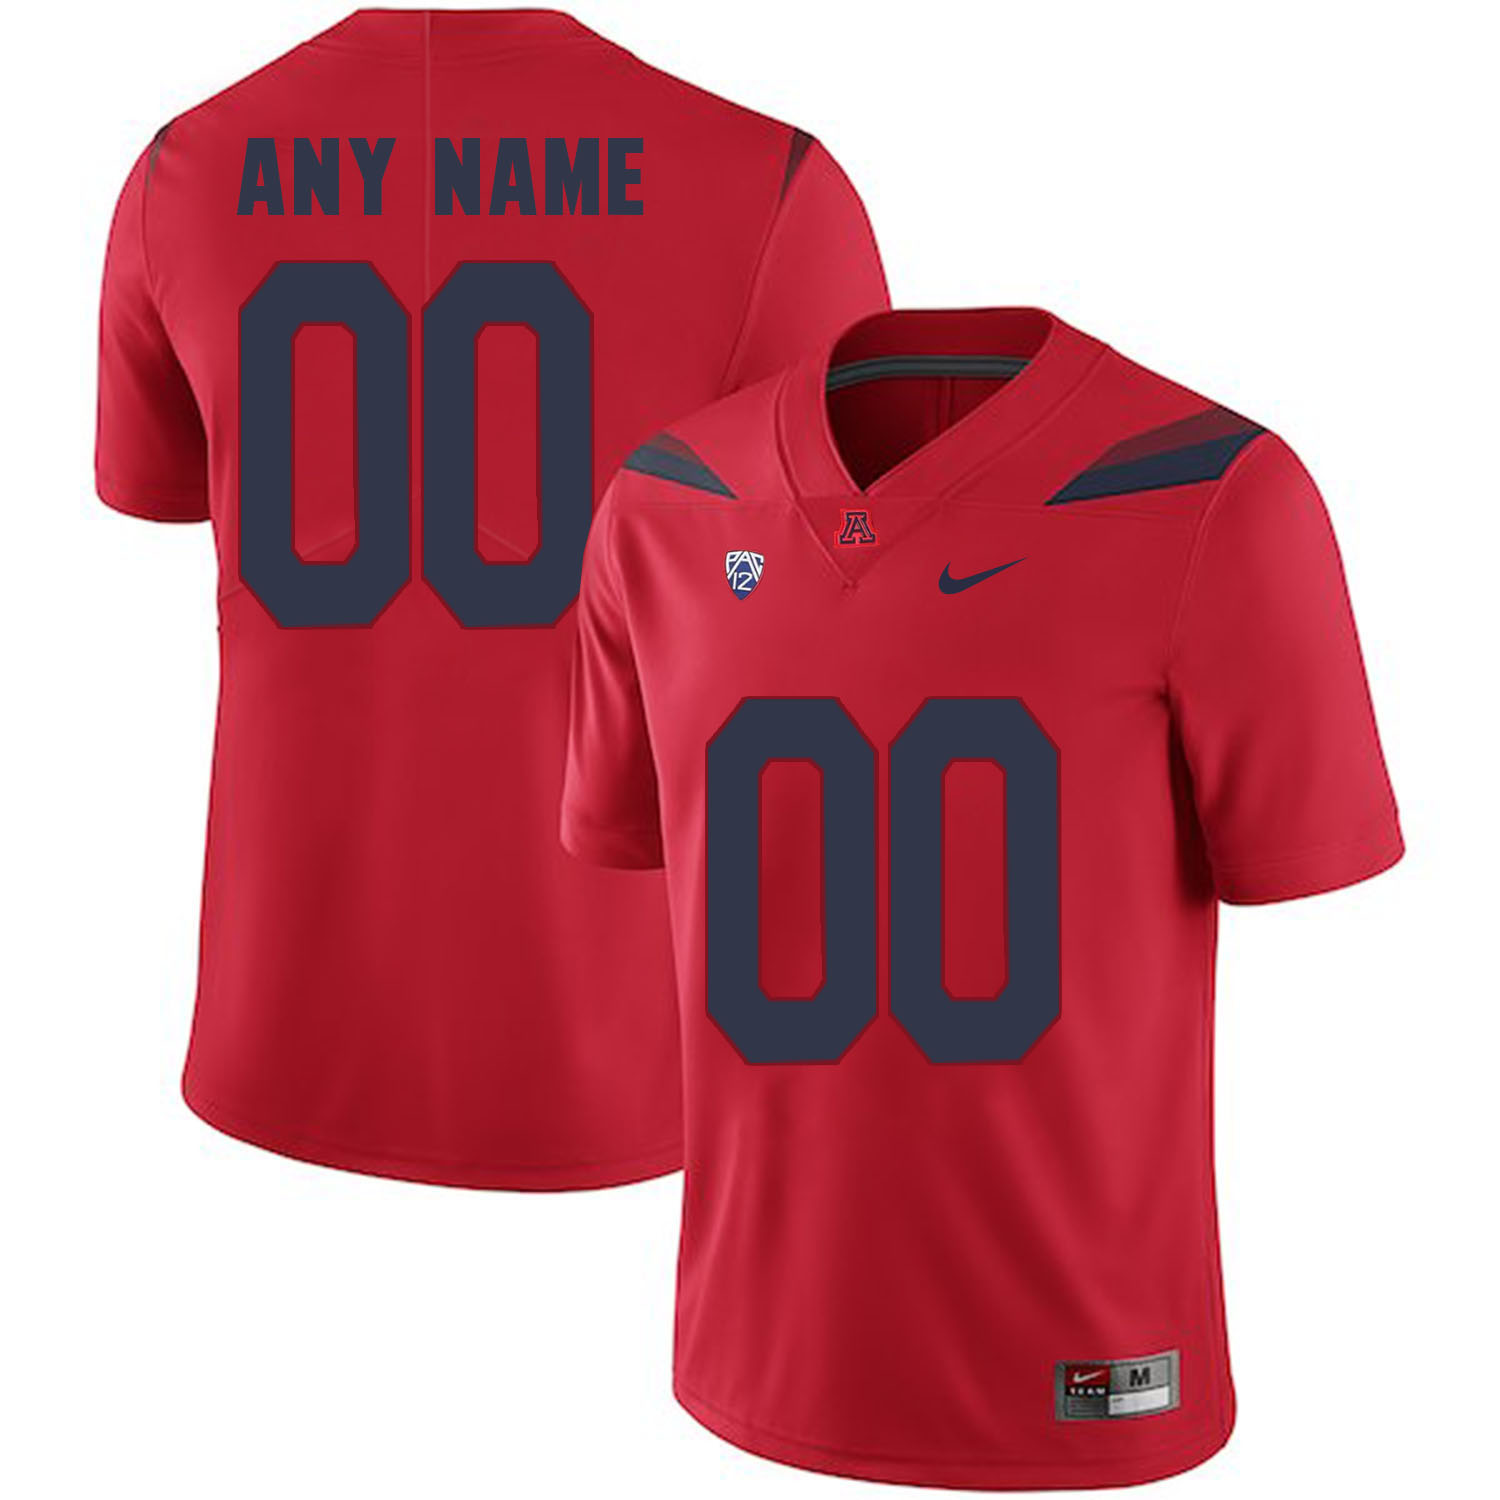 Arizona Wildcats Red Men's Customized College Football Jersey